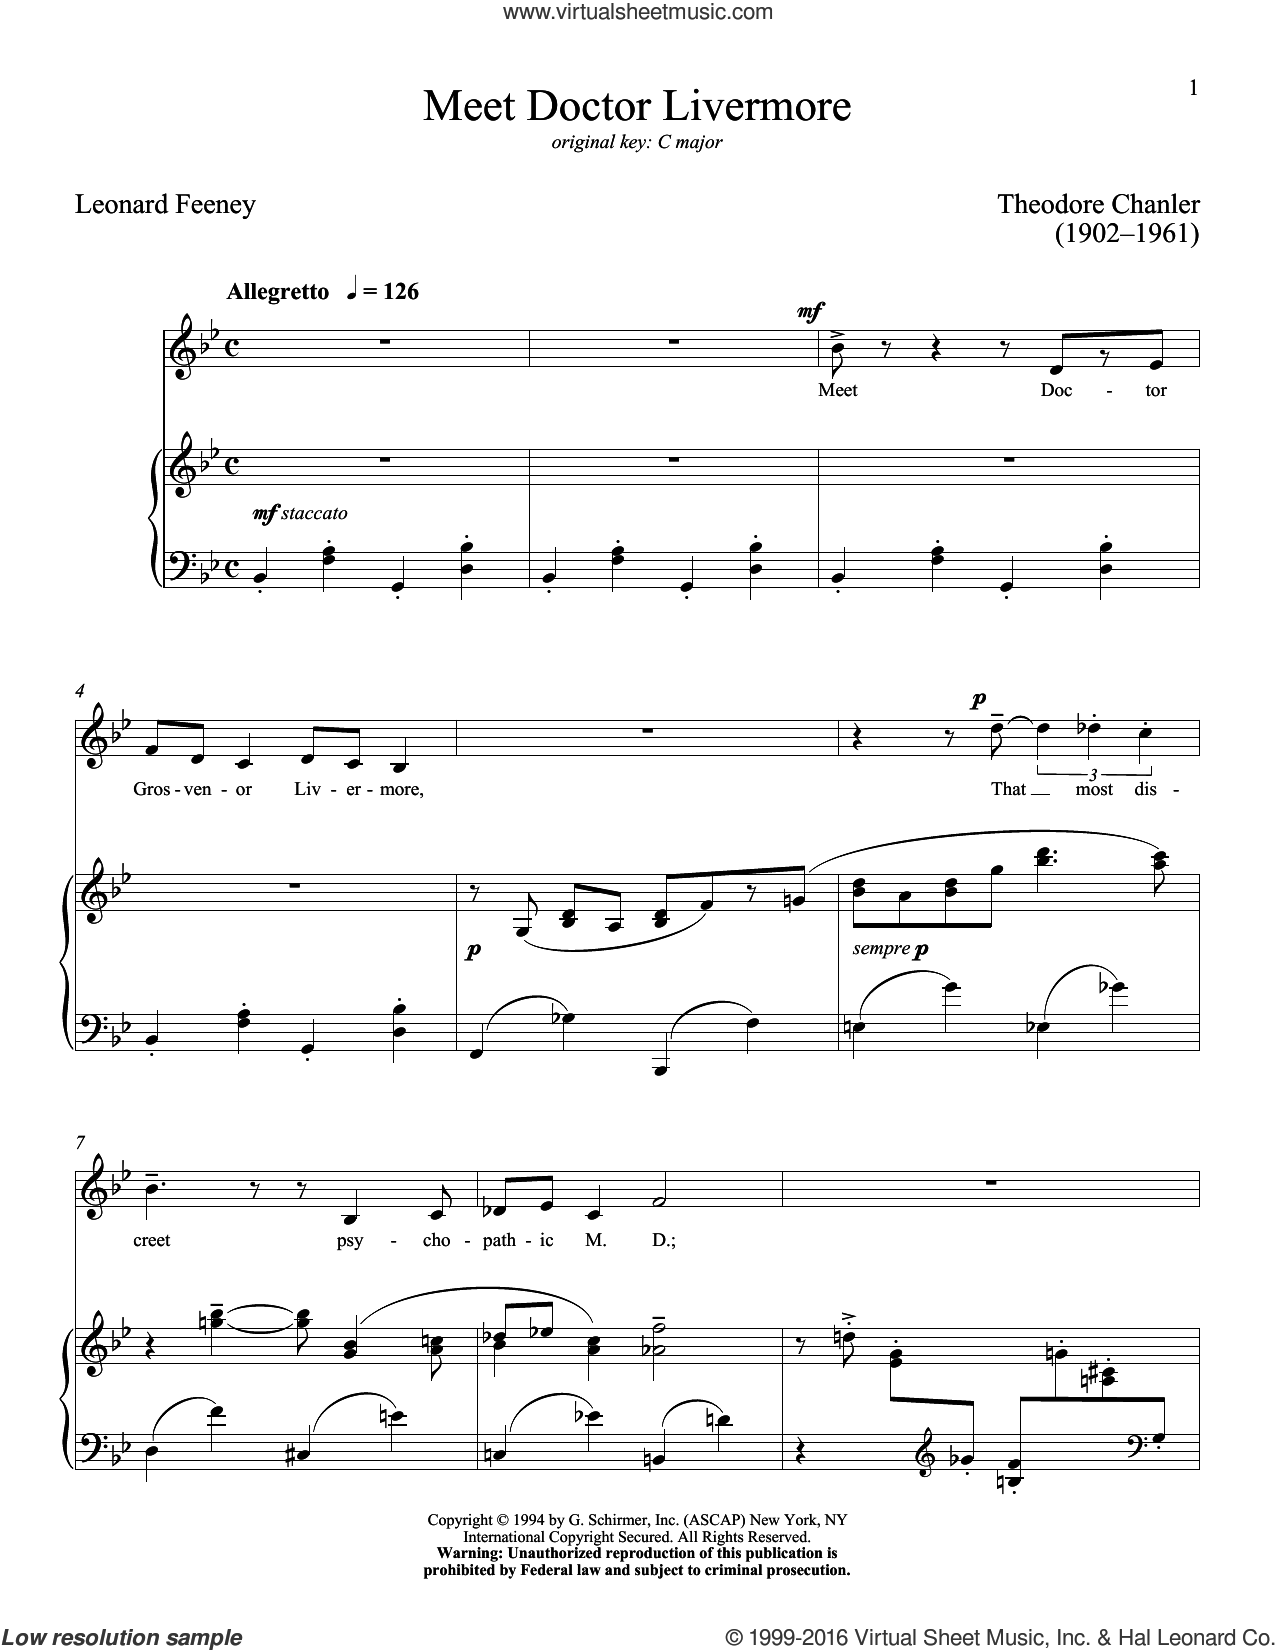 Meet Doctor Livermore sheet music for voice and piano (Low ) by Theodore Chanler and Richard Walters. Score Image Preview.